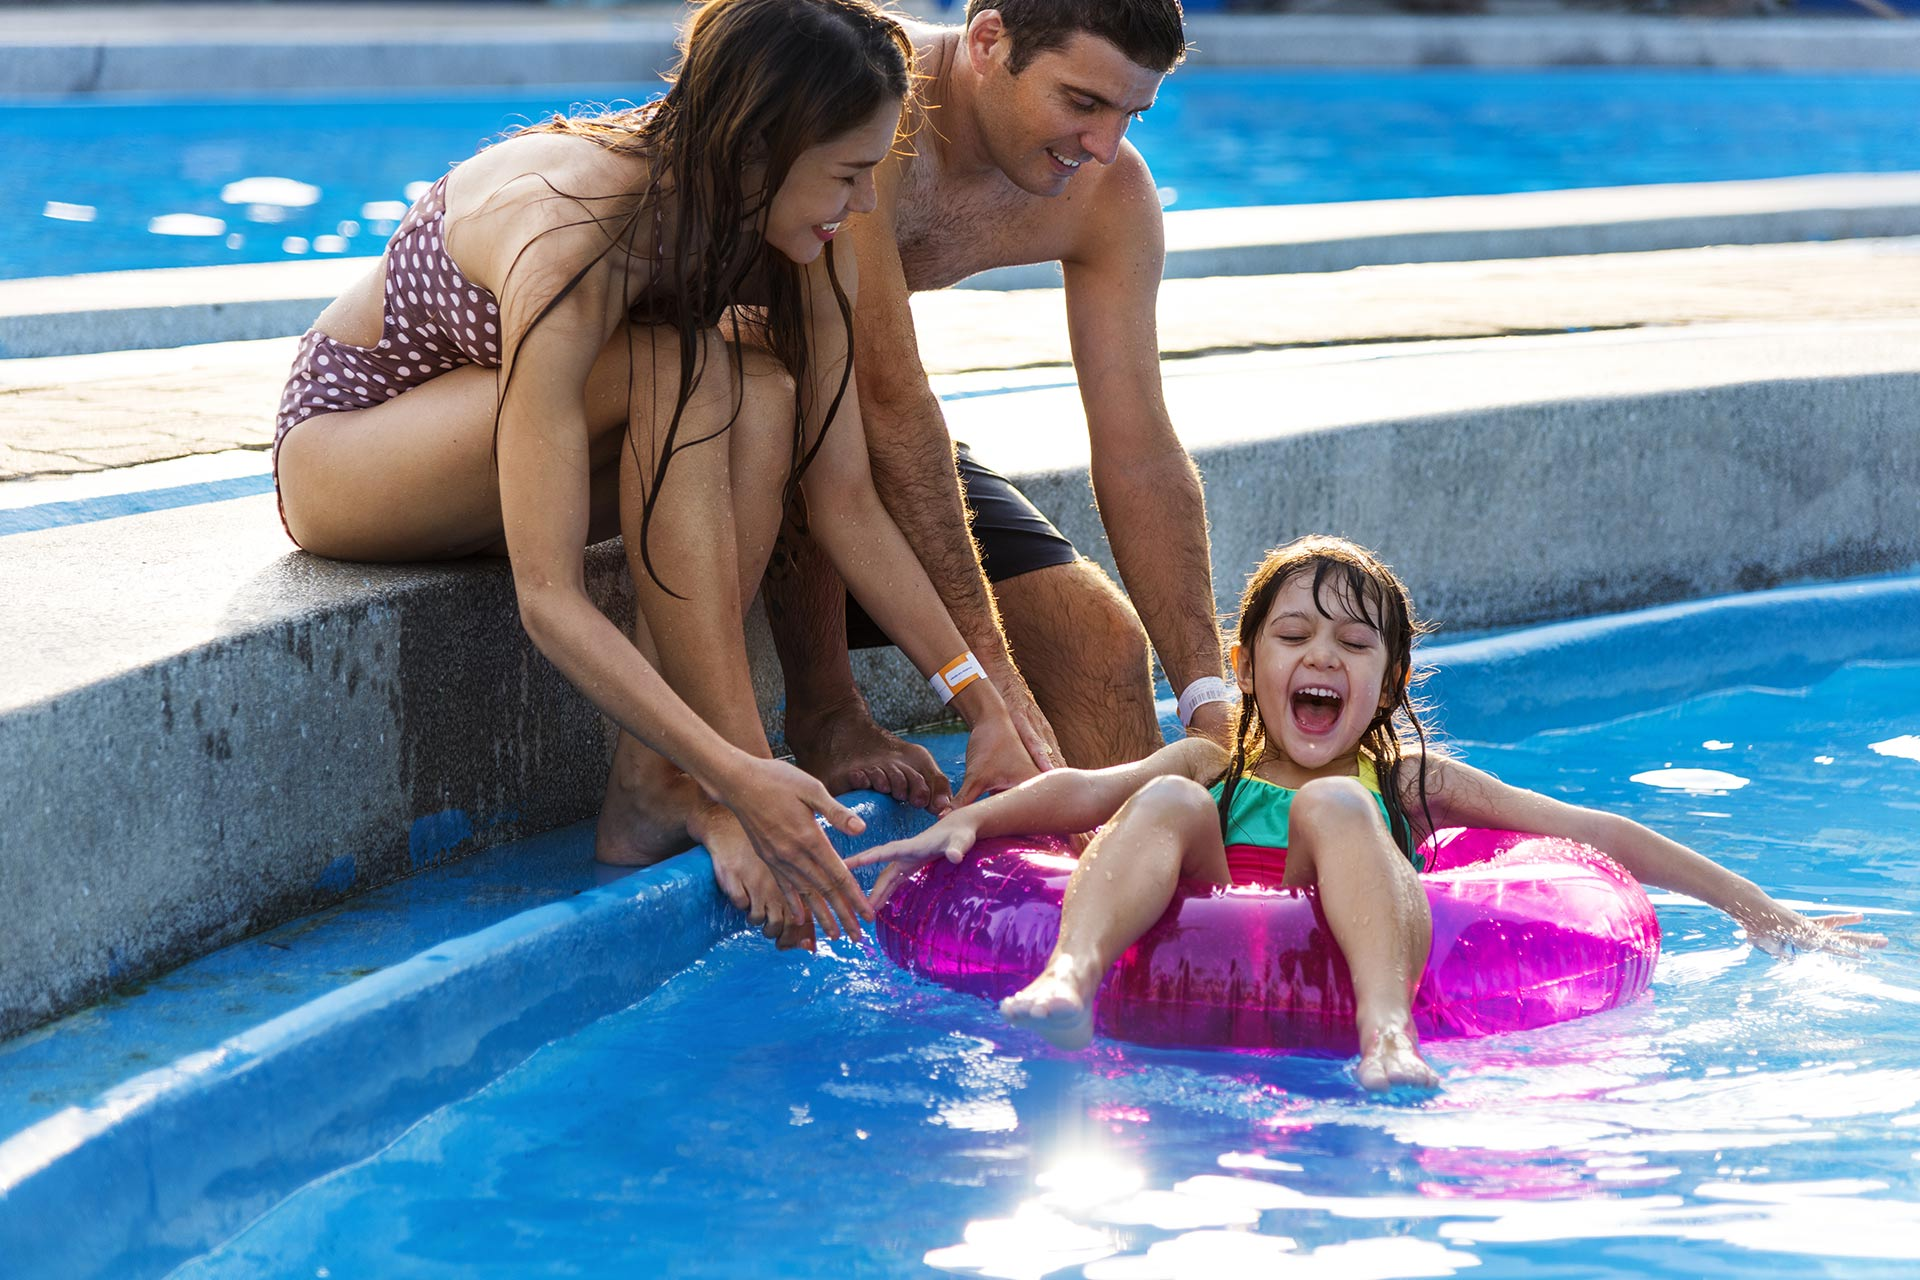 A family enjoying some time in the pool in the midst of their vacation.